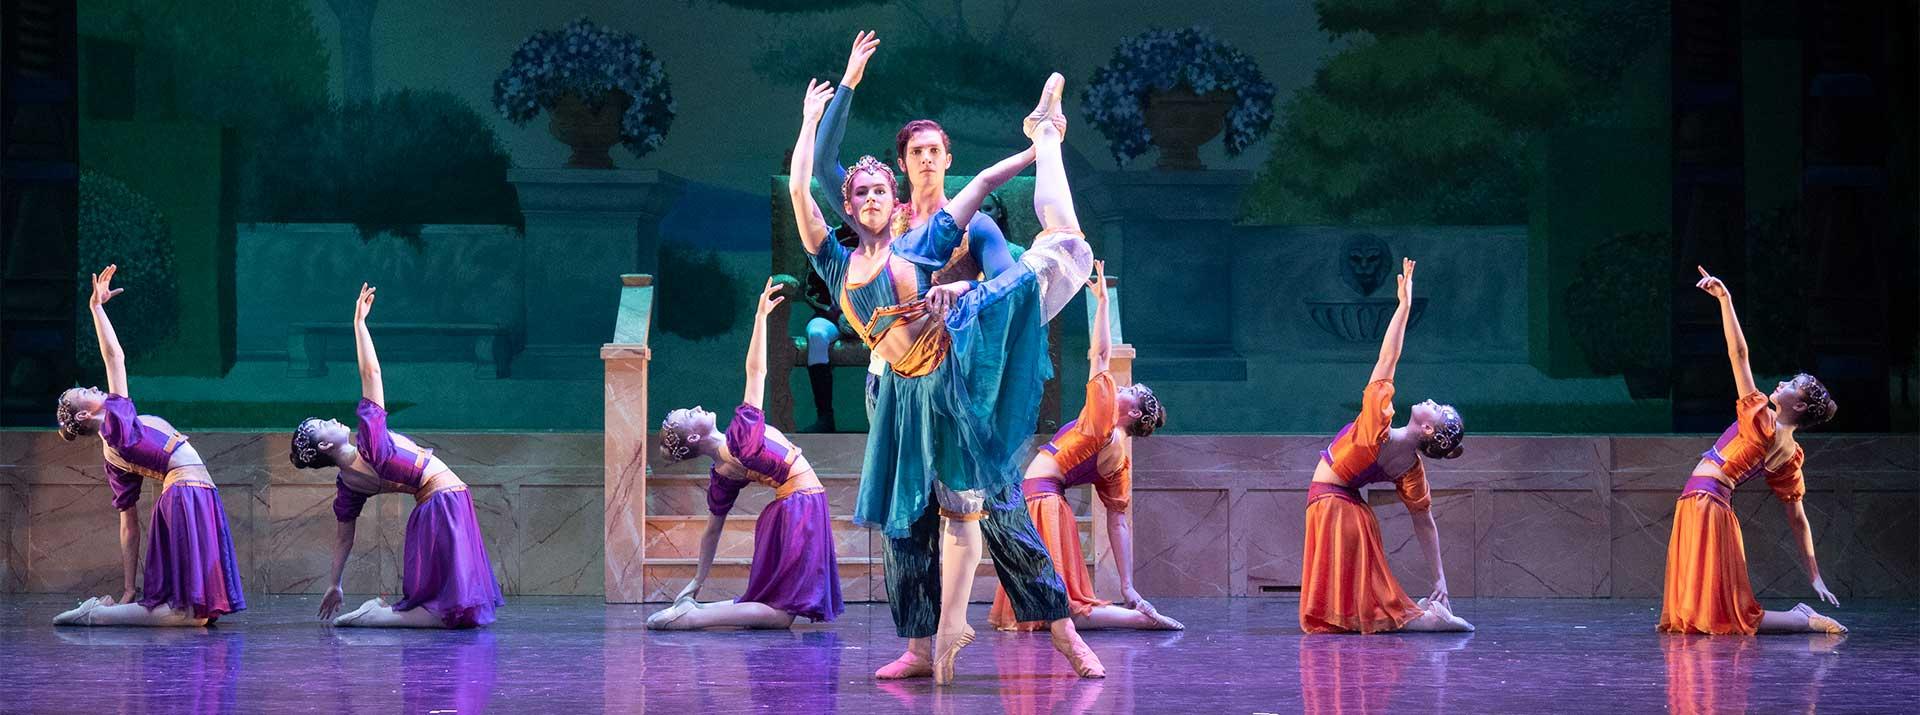 Scholarships at the Garden City Ballet - dancers on stage